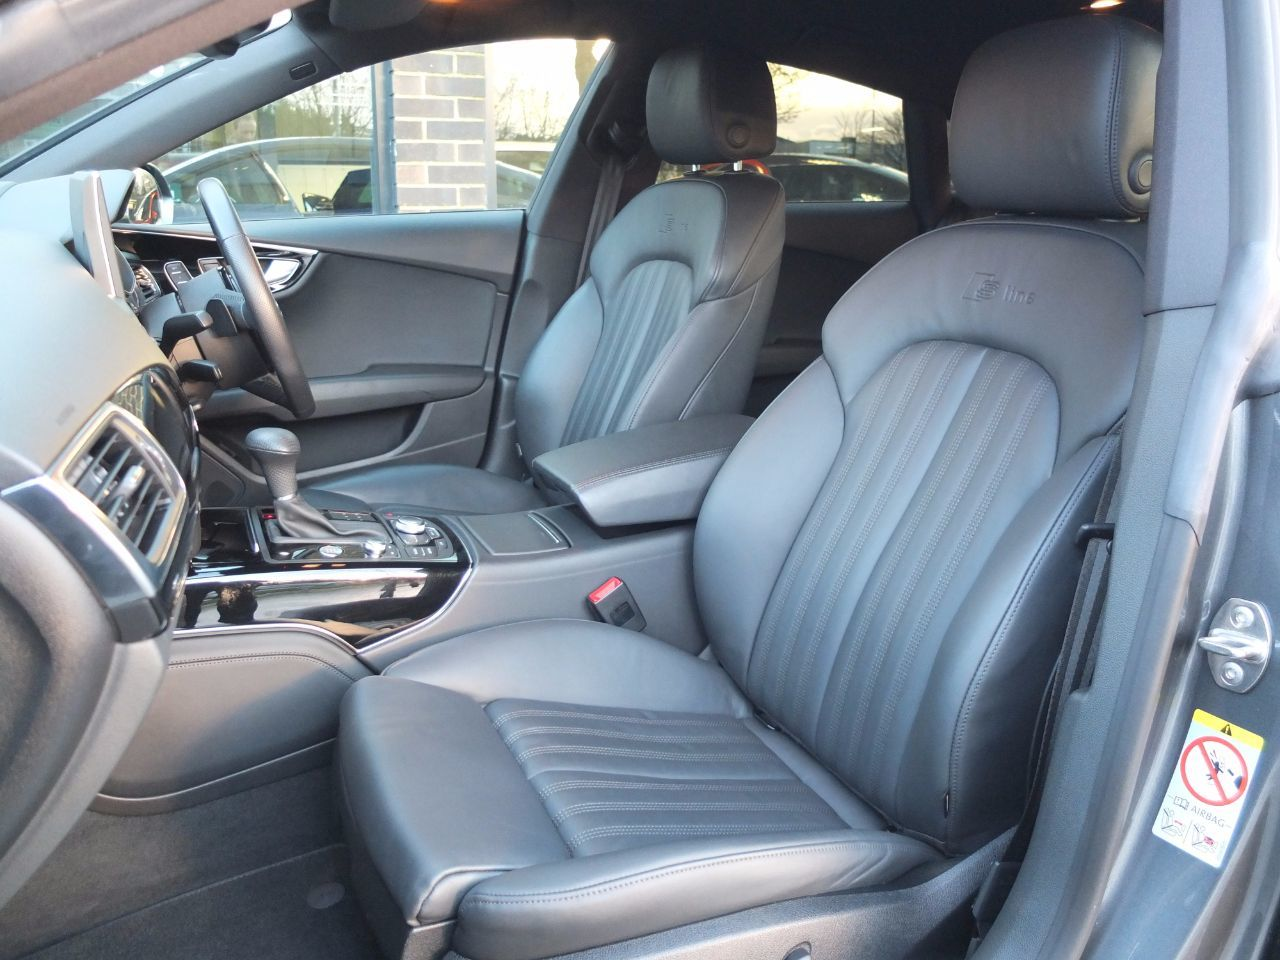 used audi a7 3 0 tdi quattro black edition s tronic 245ps. Black Bedroom Furniture Sets. Home Design Ideas